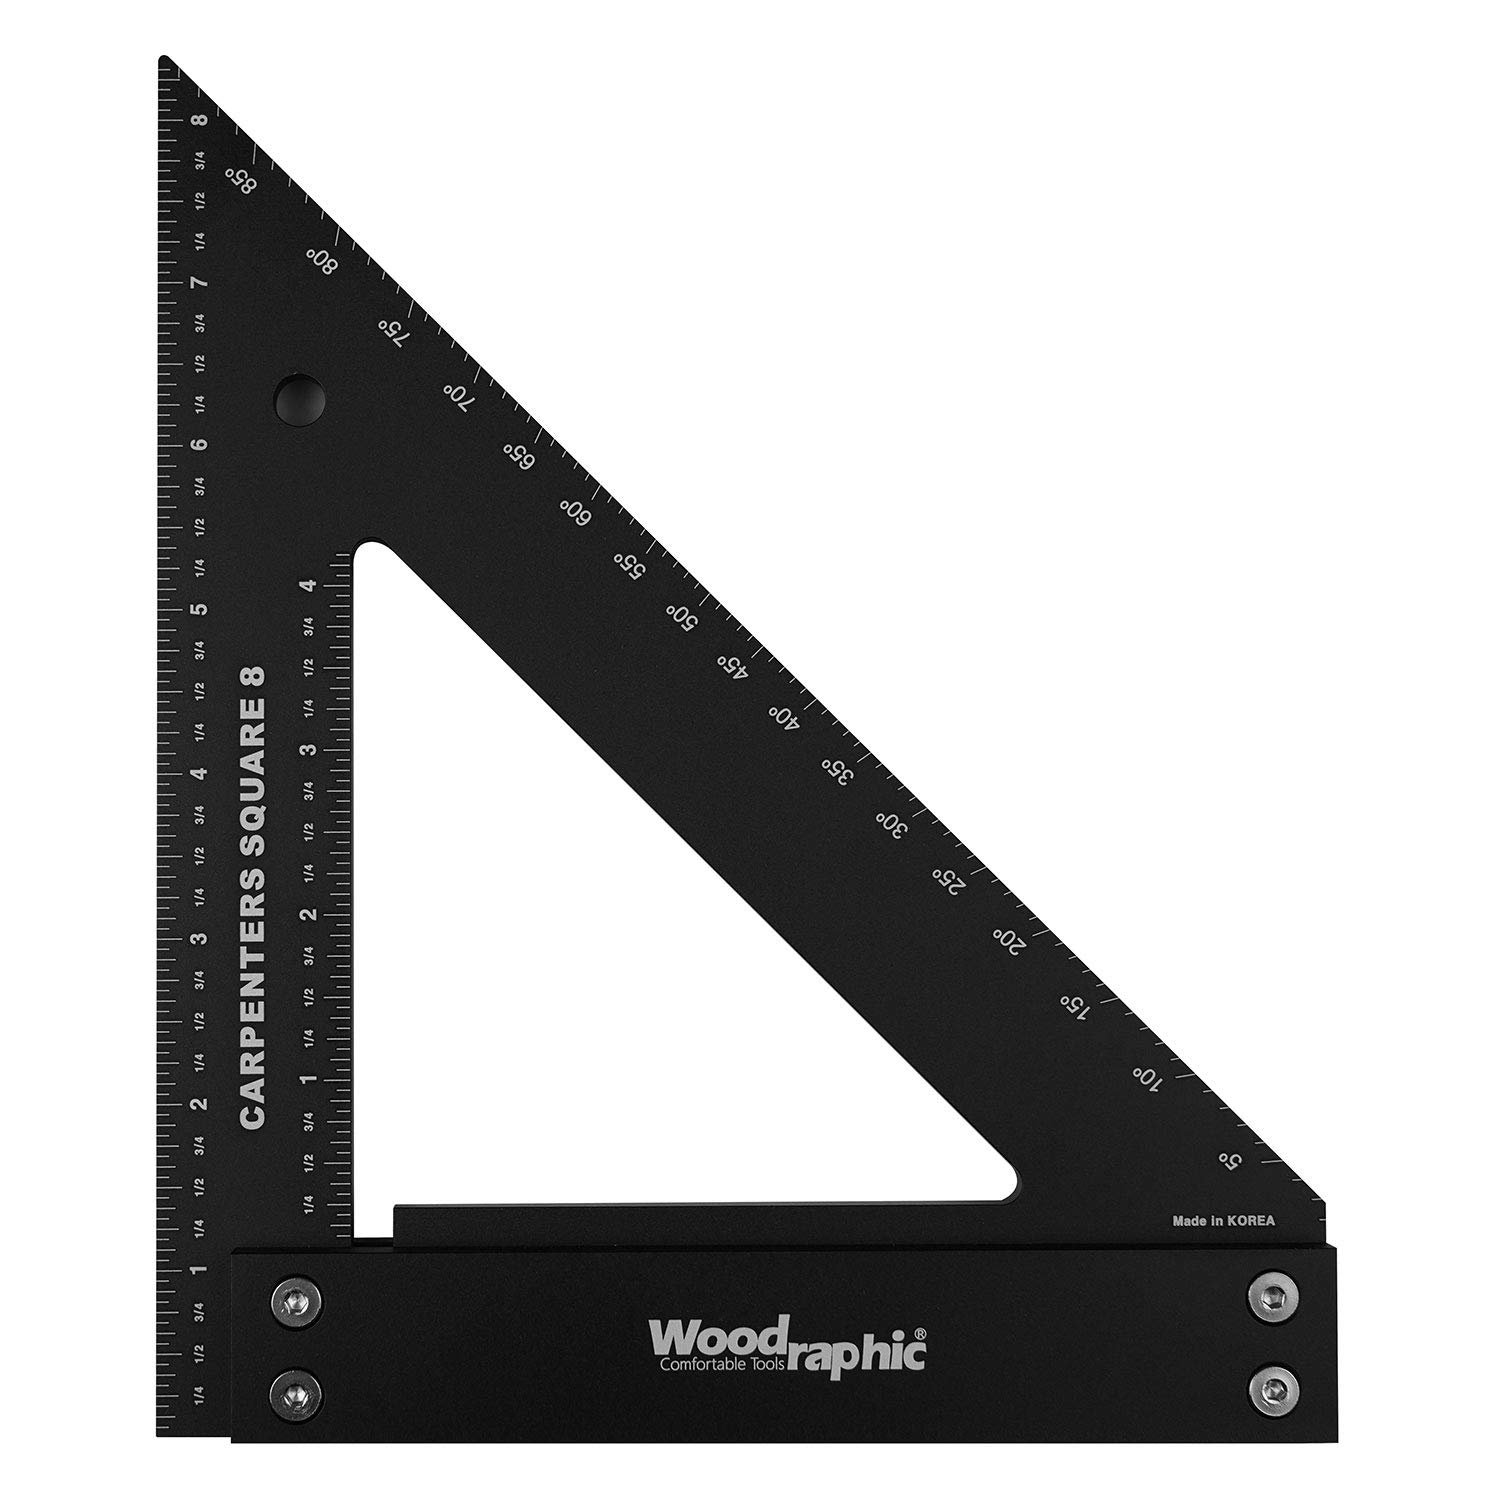 Woodraphic Professional Carpenter Square Layout Tools Framing Square Woodworking Tools Rafter Angle Square Aluminium Angle Scale Easy Read 8 Inch